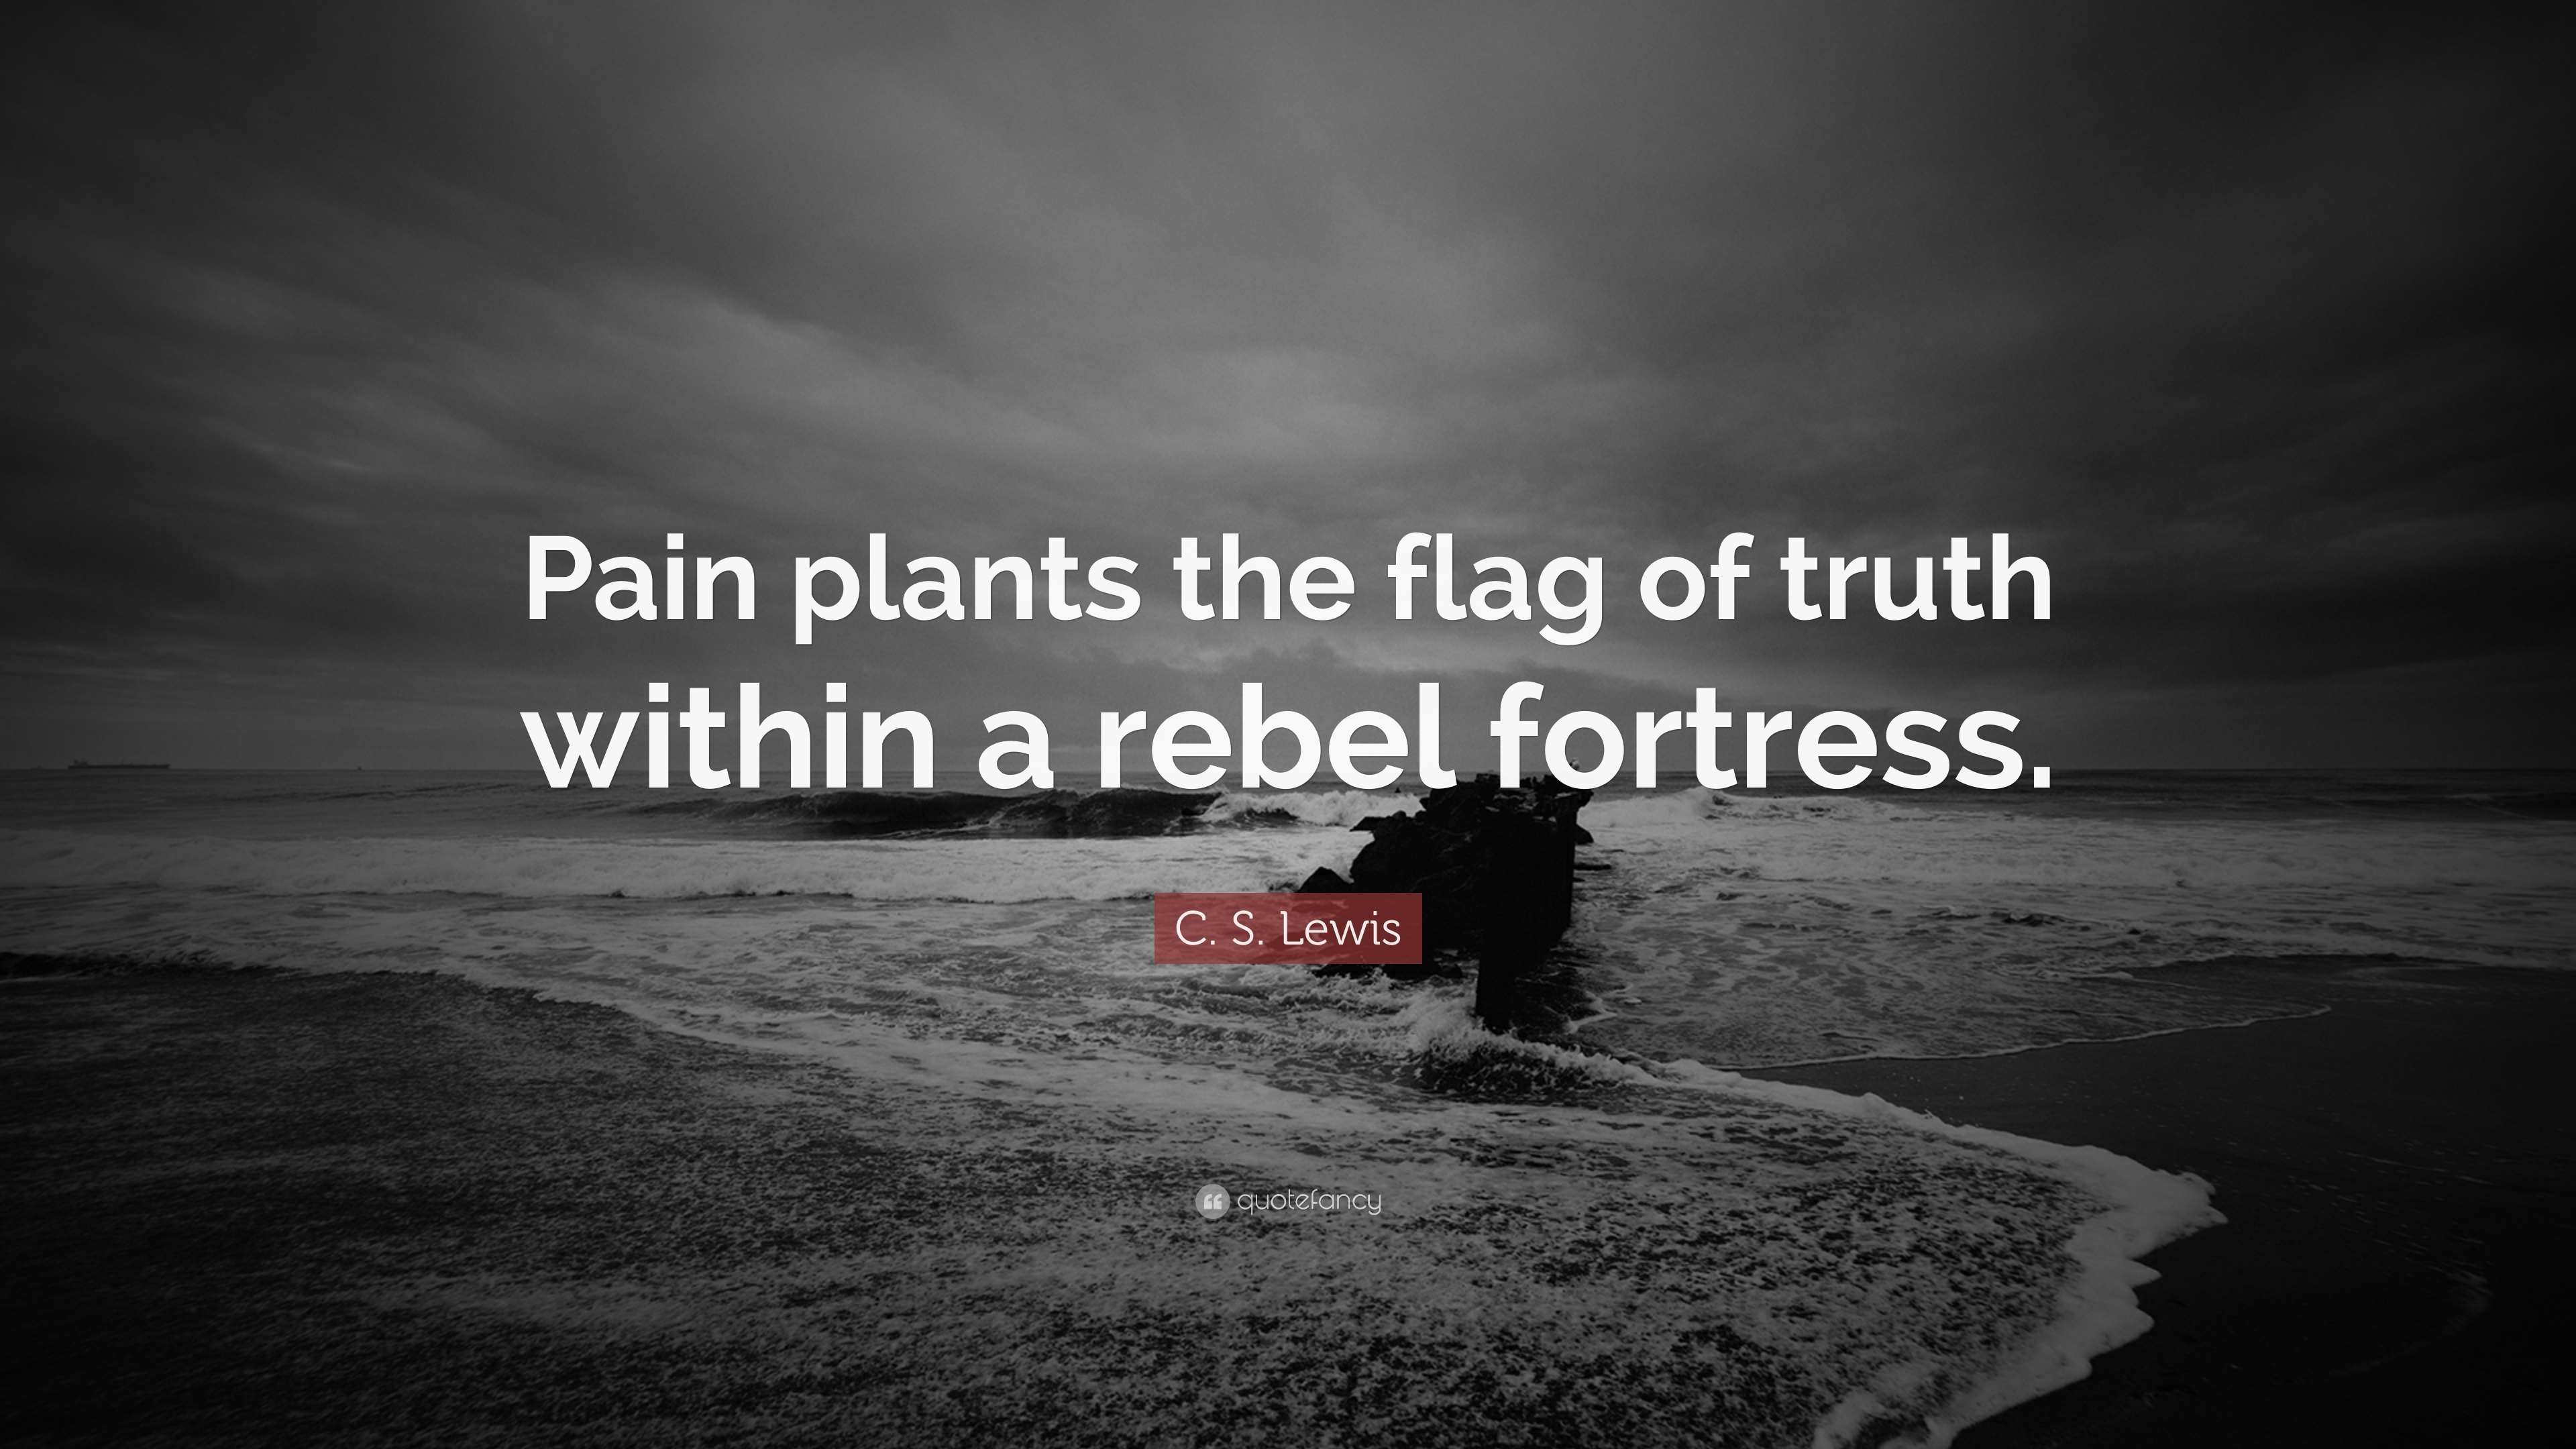 C S Lewis Quote Pain Plants The Flag Of Truth Within A Rebel